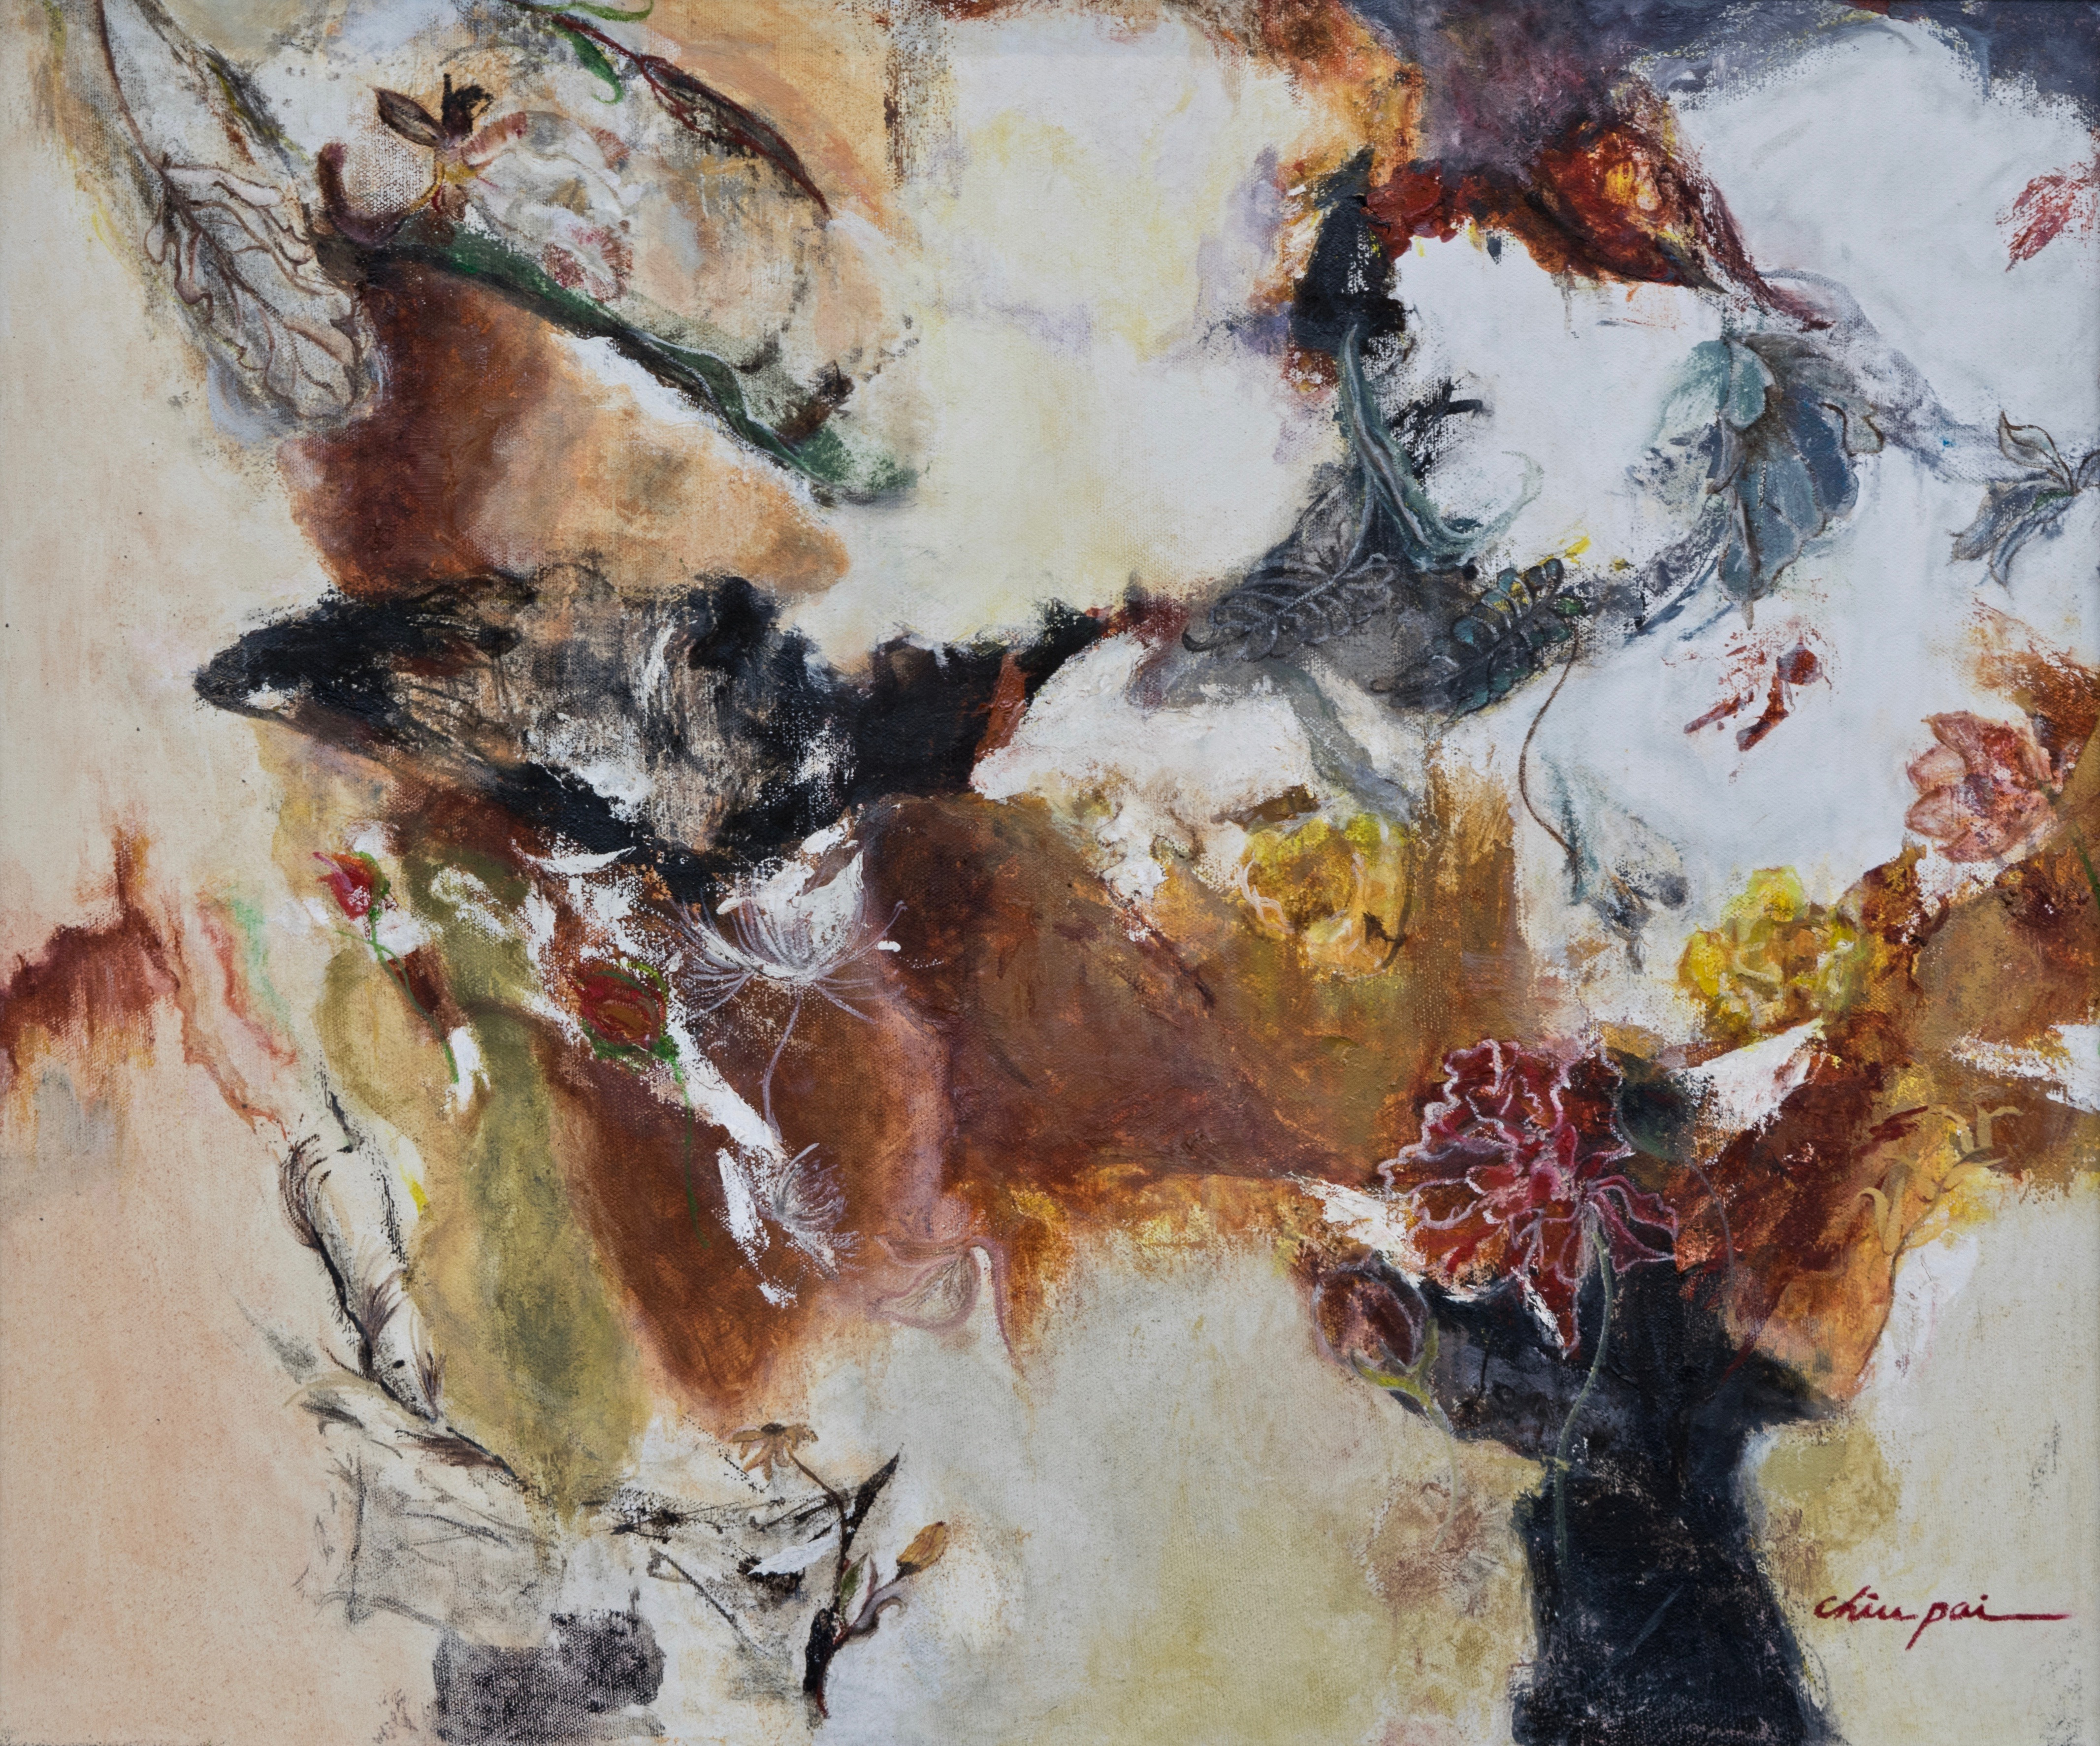 """Lot 02: Chiu Pai, THE SHADOW OF THE AUTUMN (2016), Oil on canvas, 20 x 24"""" Estimate: $1000-1500"""